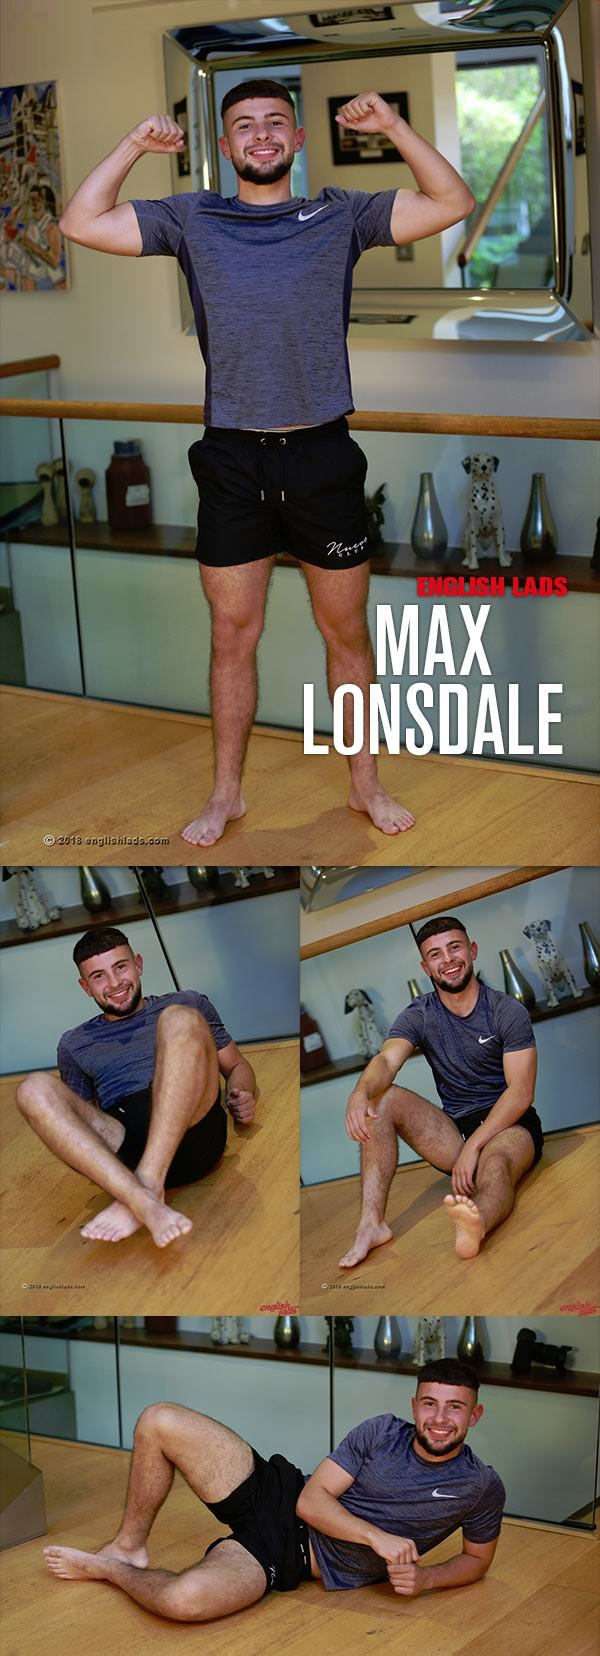 EnglishLads Straight Lad Max Strips And Shows His Athletic Body Wanks His Big Uncut Cock Max Lonsdale